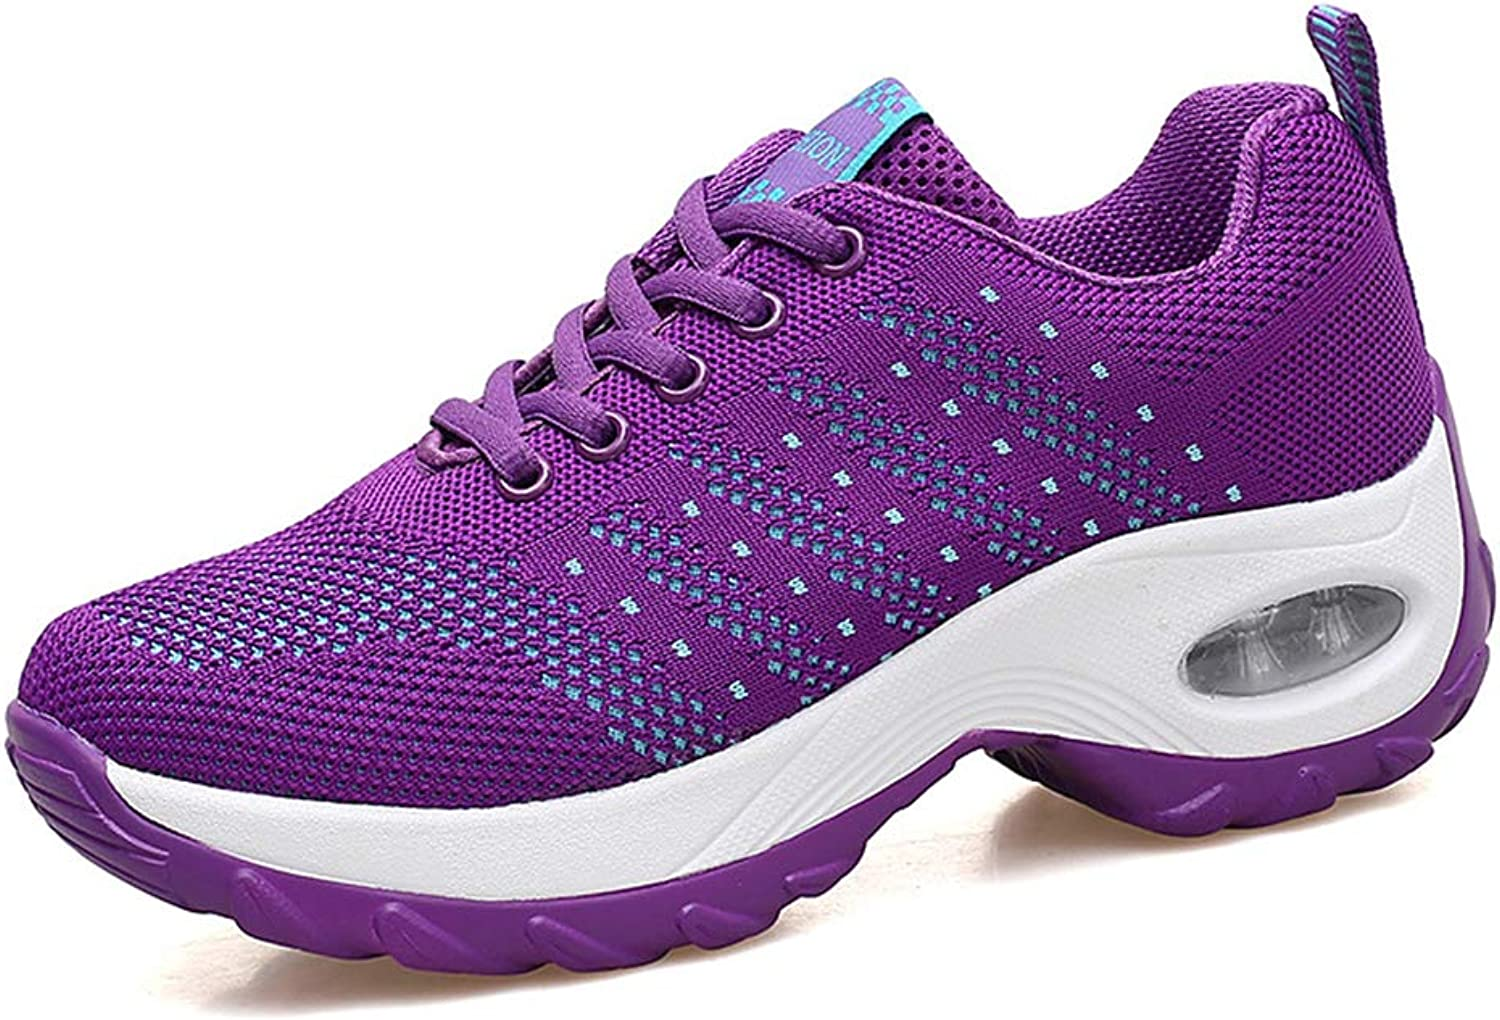 YANJK Running shoes Fashion Wild Comfortable Breathable Women's Casual Sports shoes